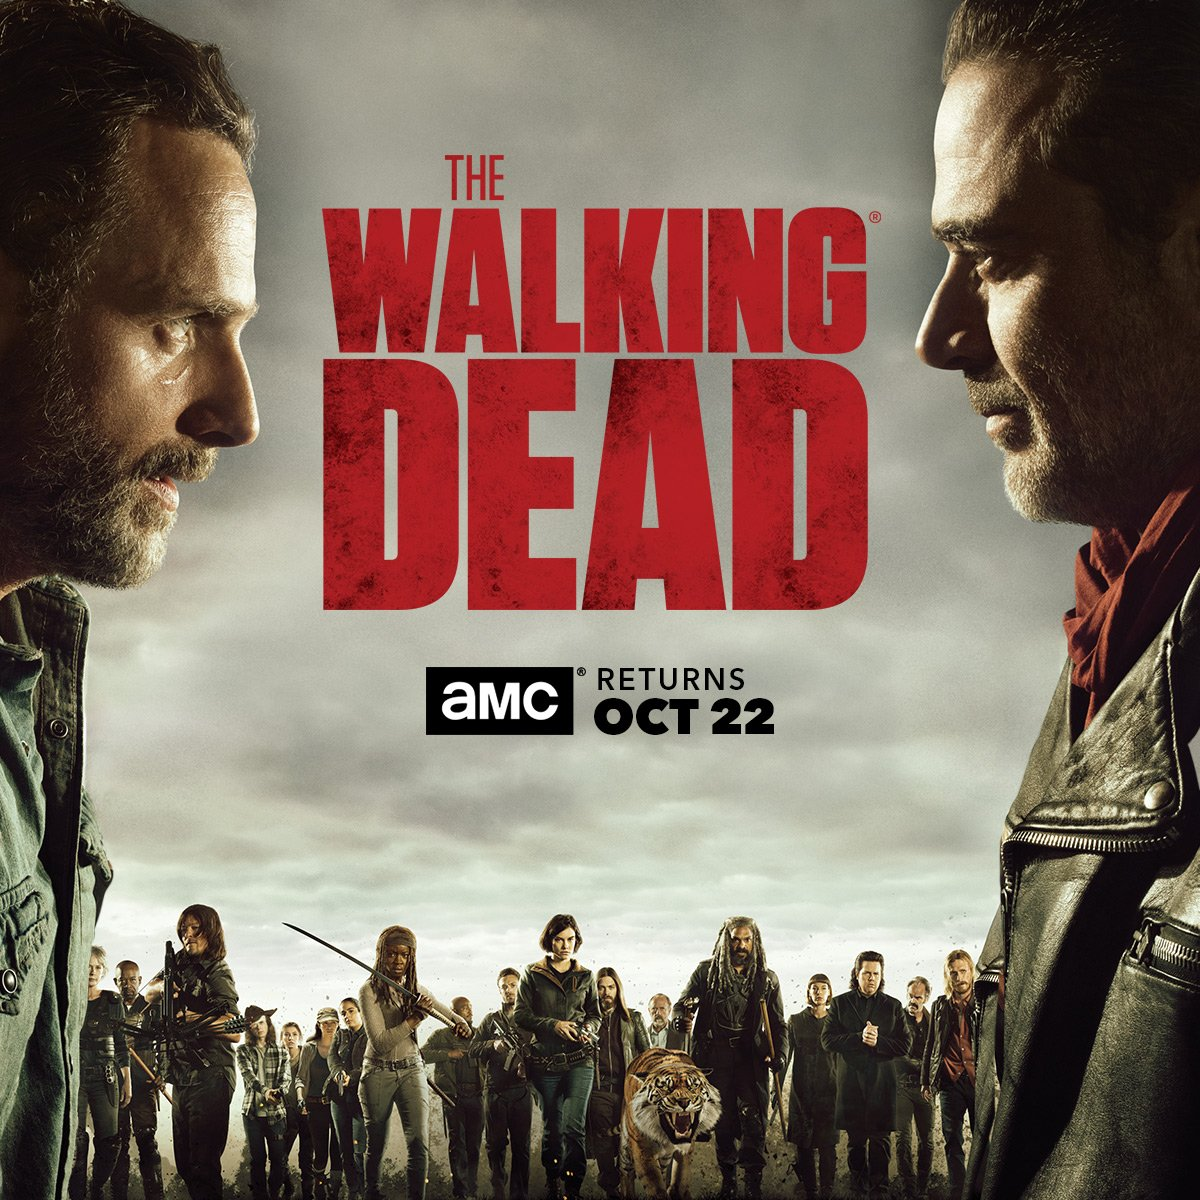 https://www.foxtv.es/series/fox/the-walking-dead